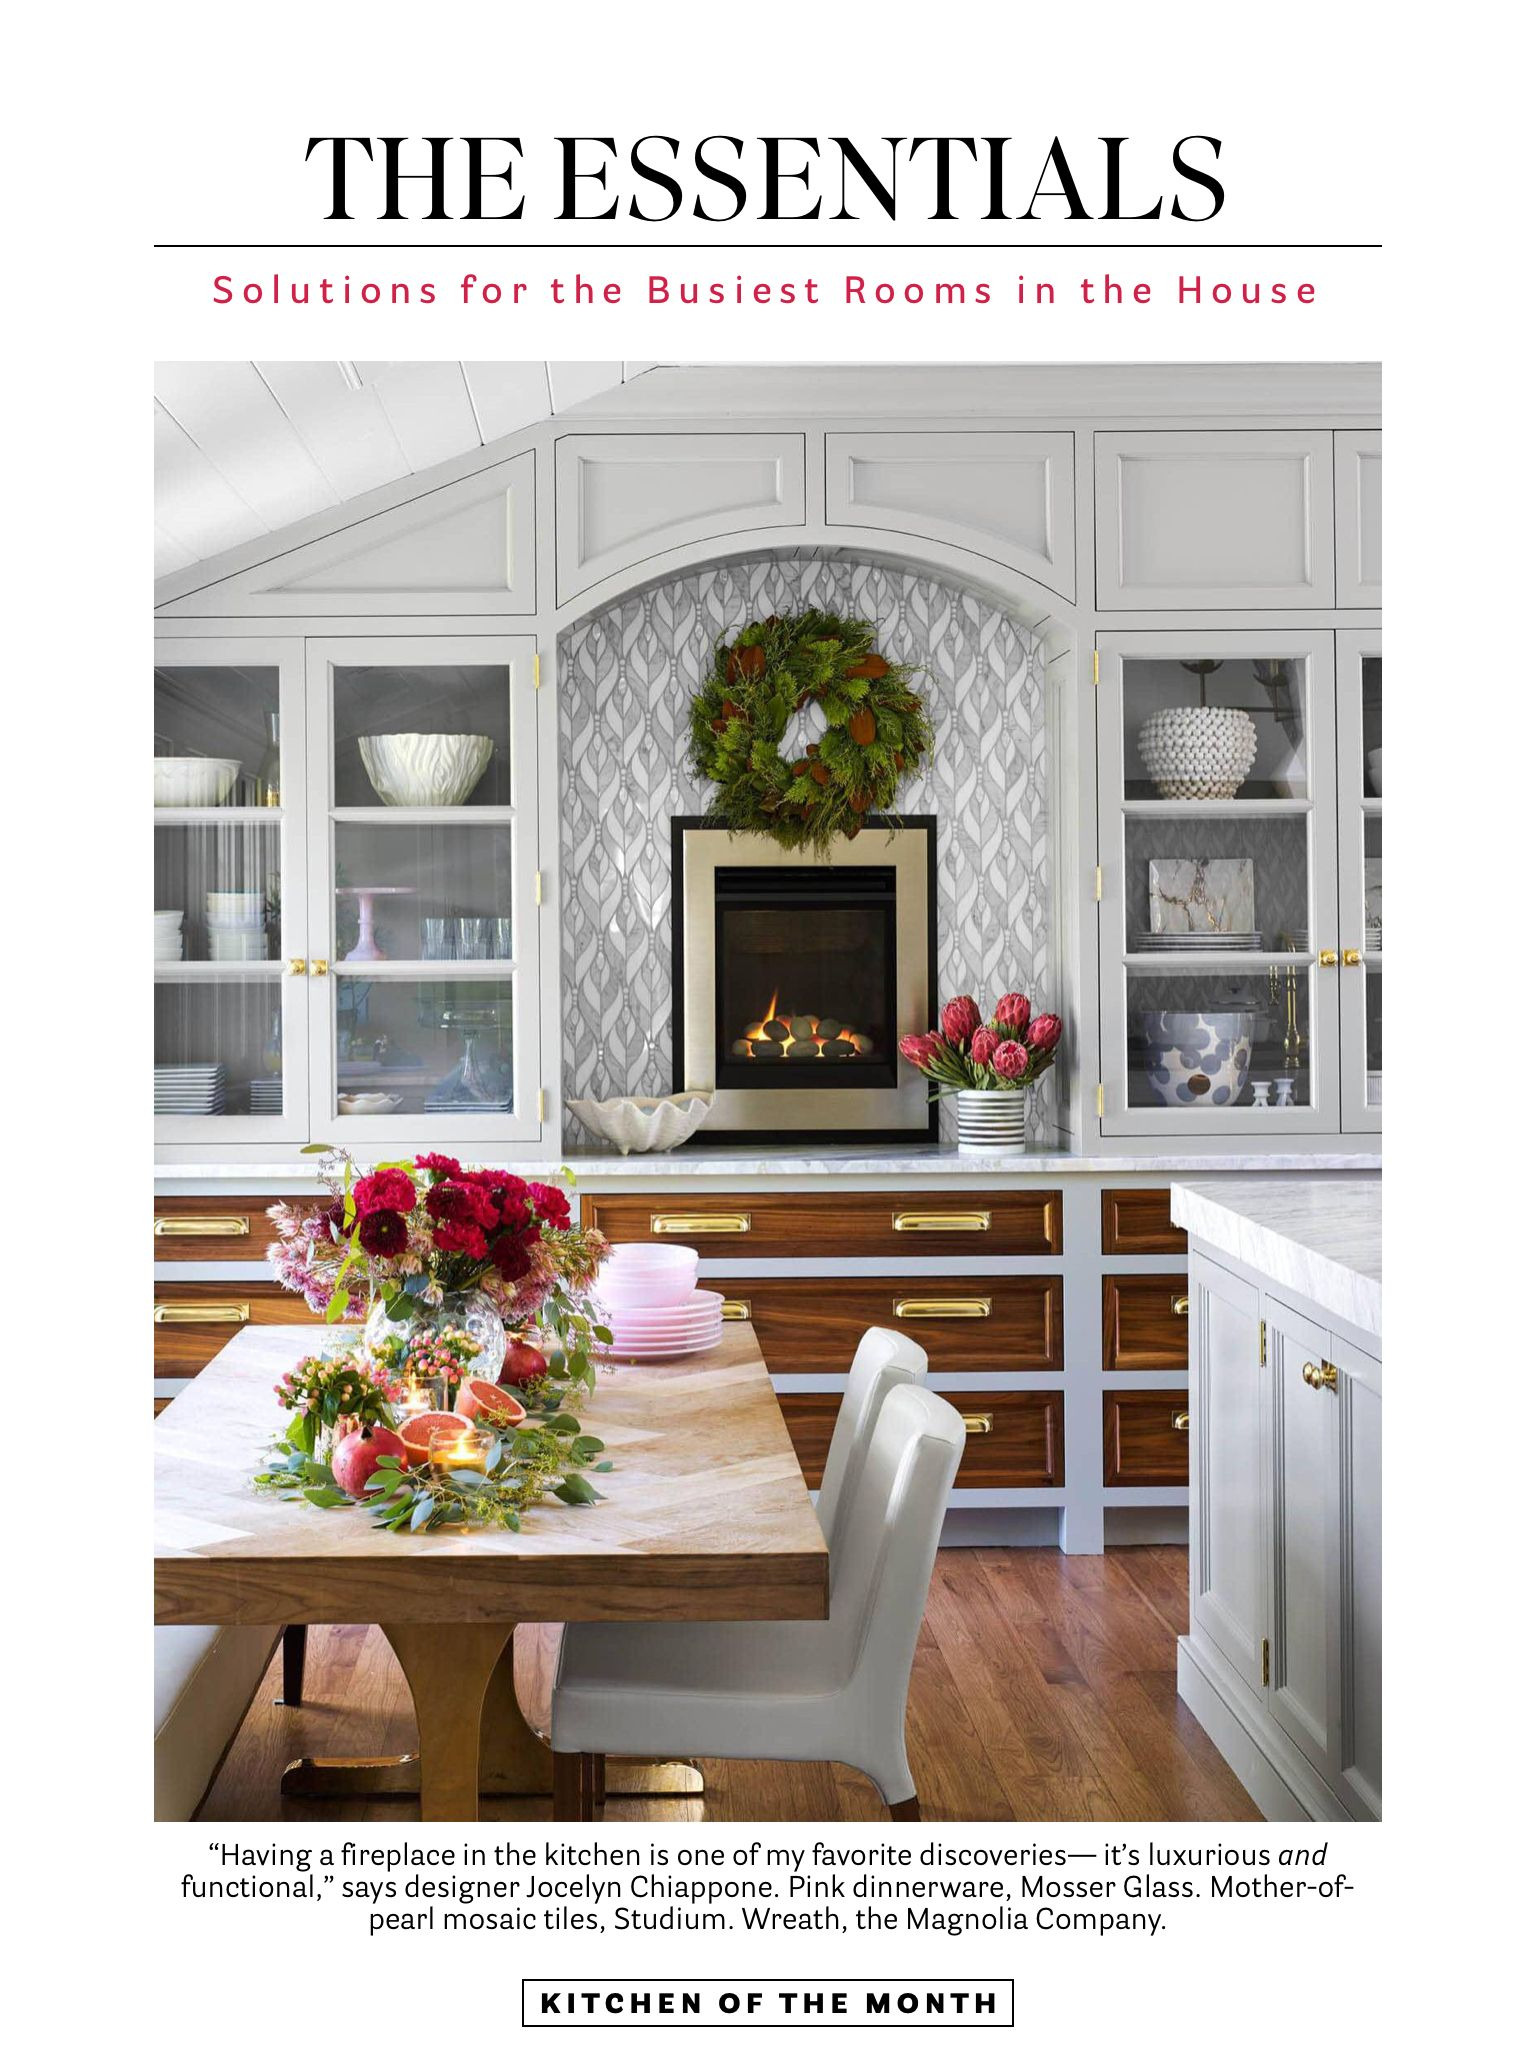 Kitchen Of The Month From House Beautiful Dec 2018 Jan 2019